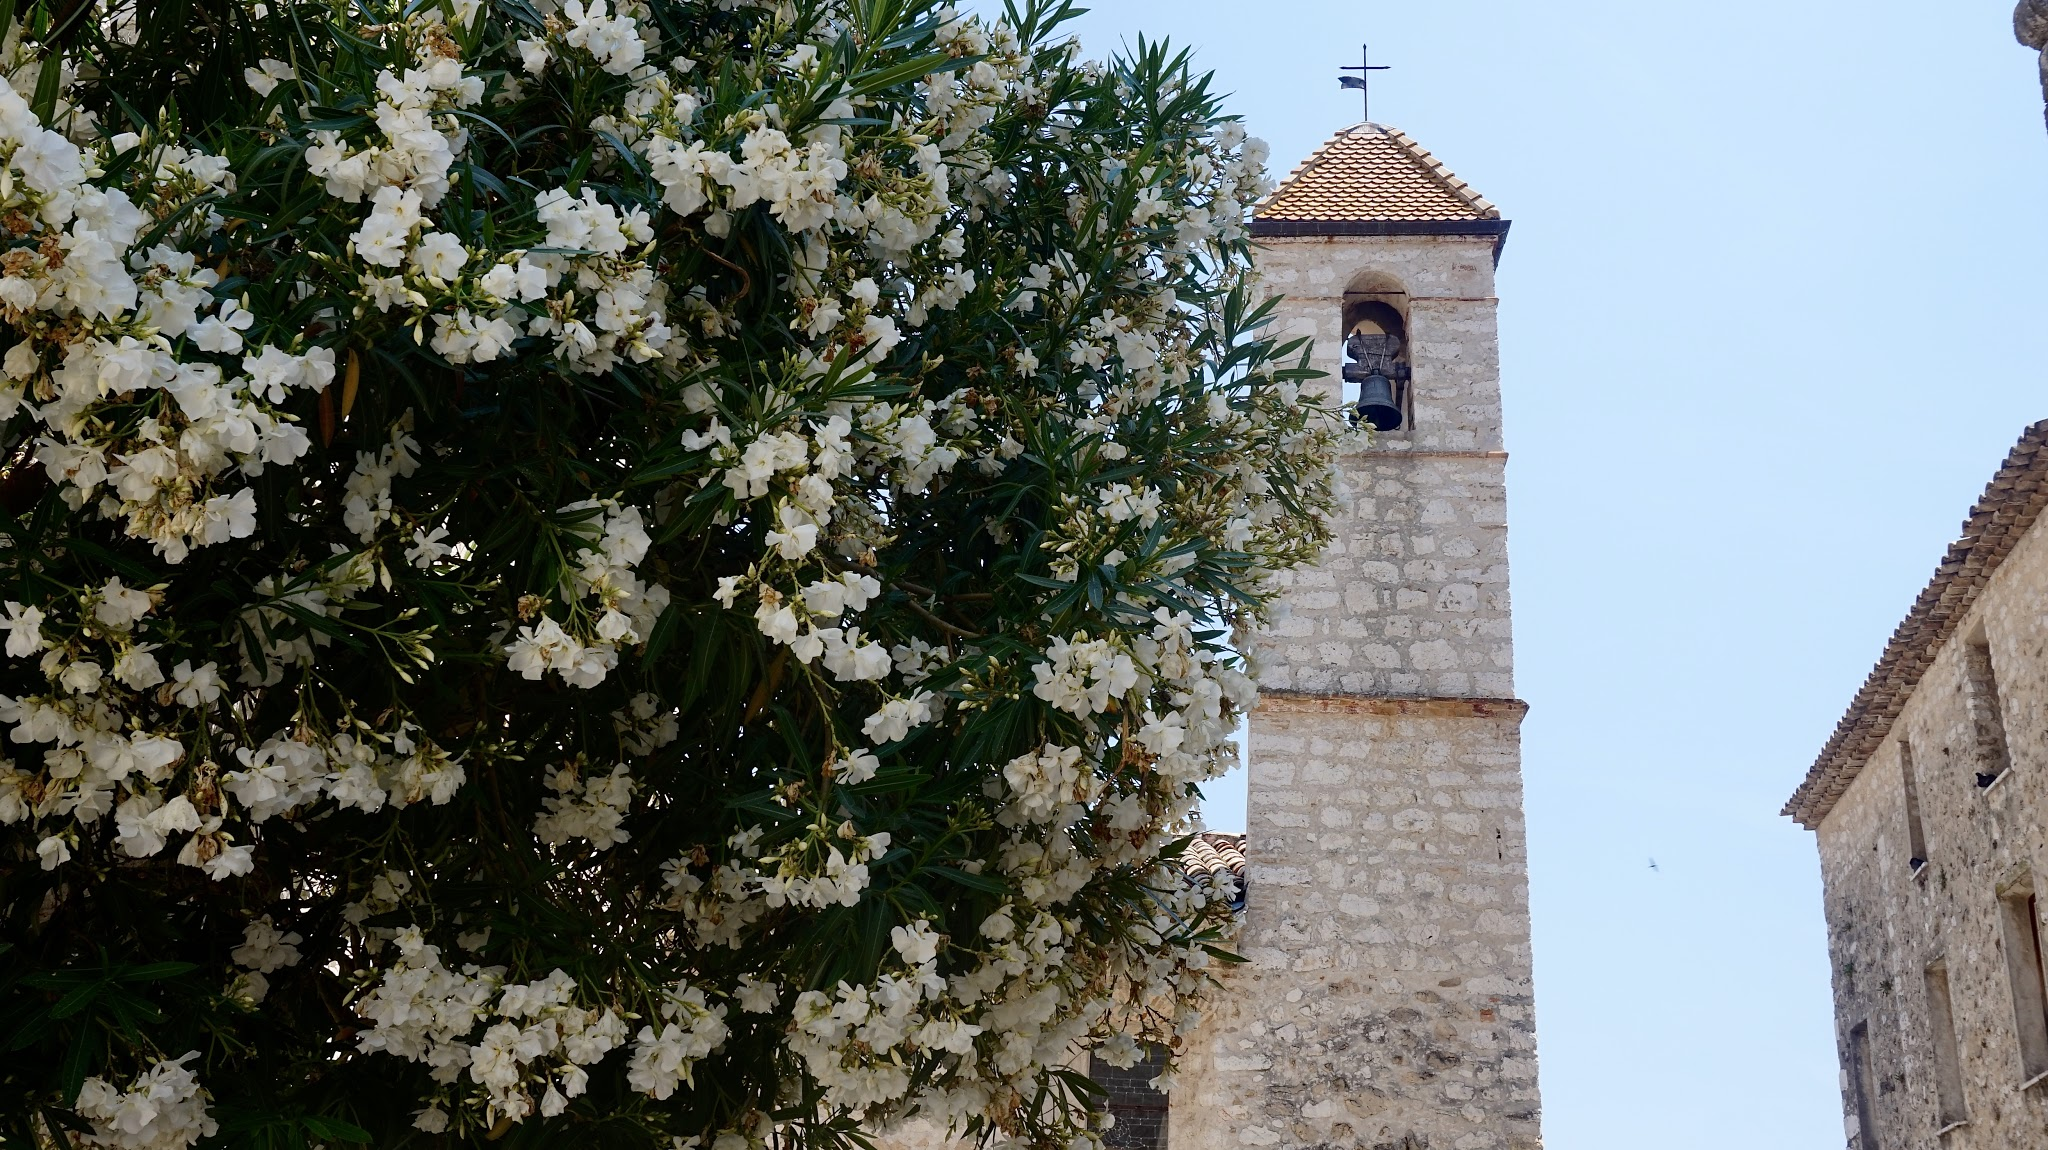 in the foreground white flowers on a green bush, in the background a stone church tower